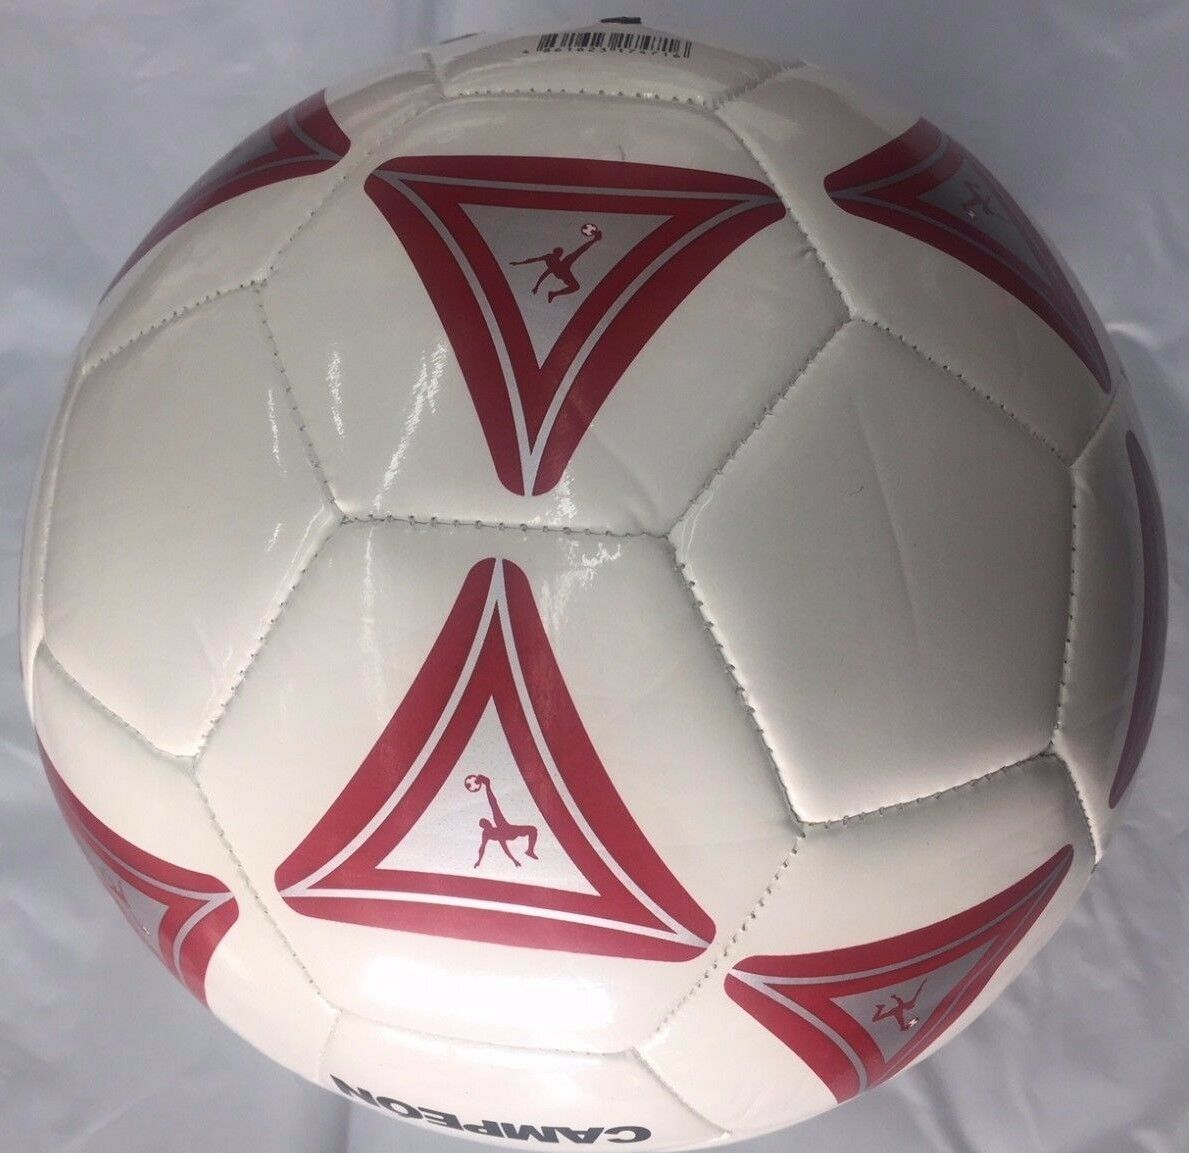 Lot Of 50 Soccer Ball Official Größe Größe Größe 5 & Weight 32 Panels Good For Practice 992030